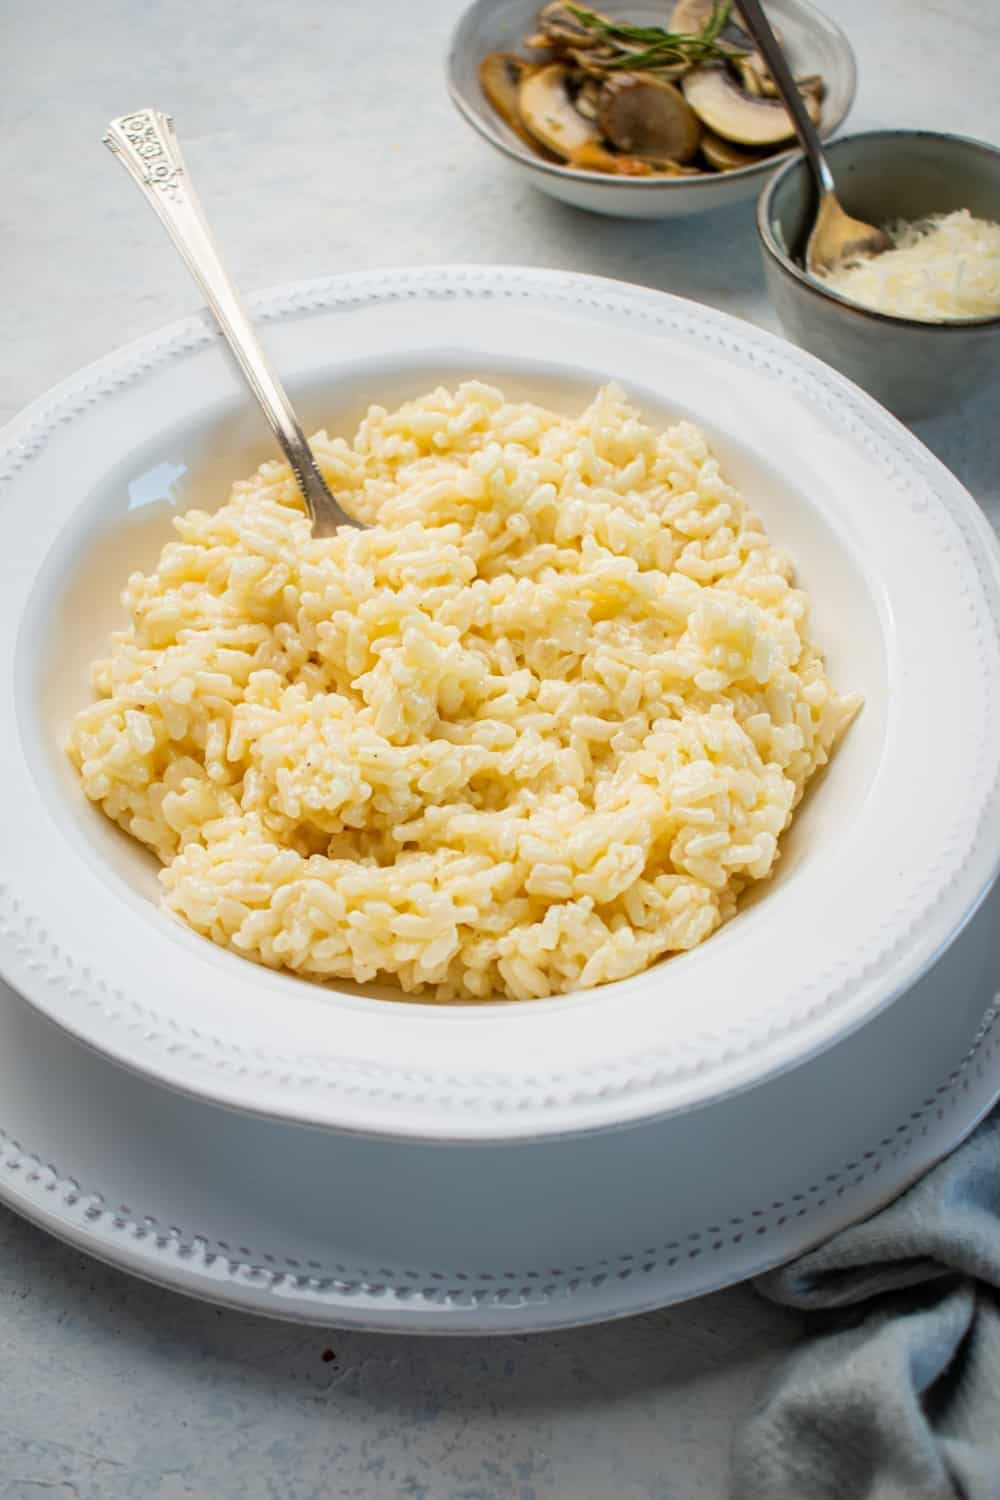 A gray counter with a white plate on it with a white bowl filled with risotto. There was a spoon in the risotto and behind the ball is a small bowl of Parmesan cheese and a small bowl of mushrooms.